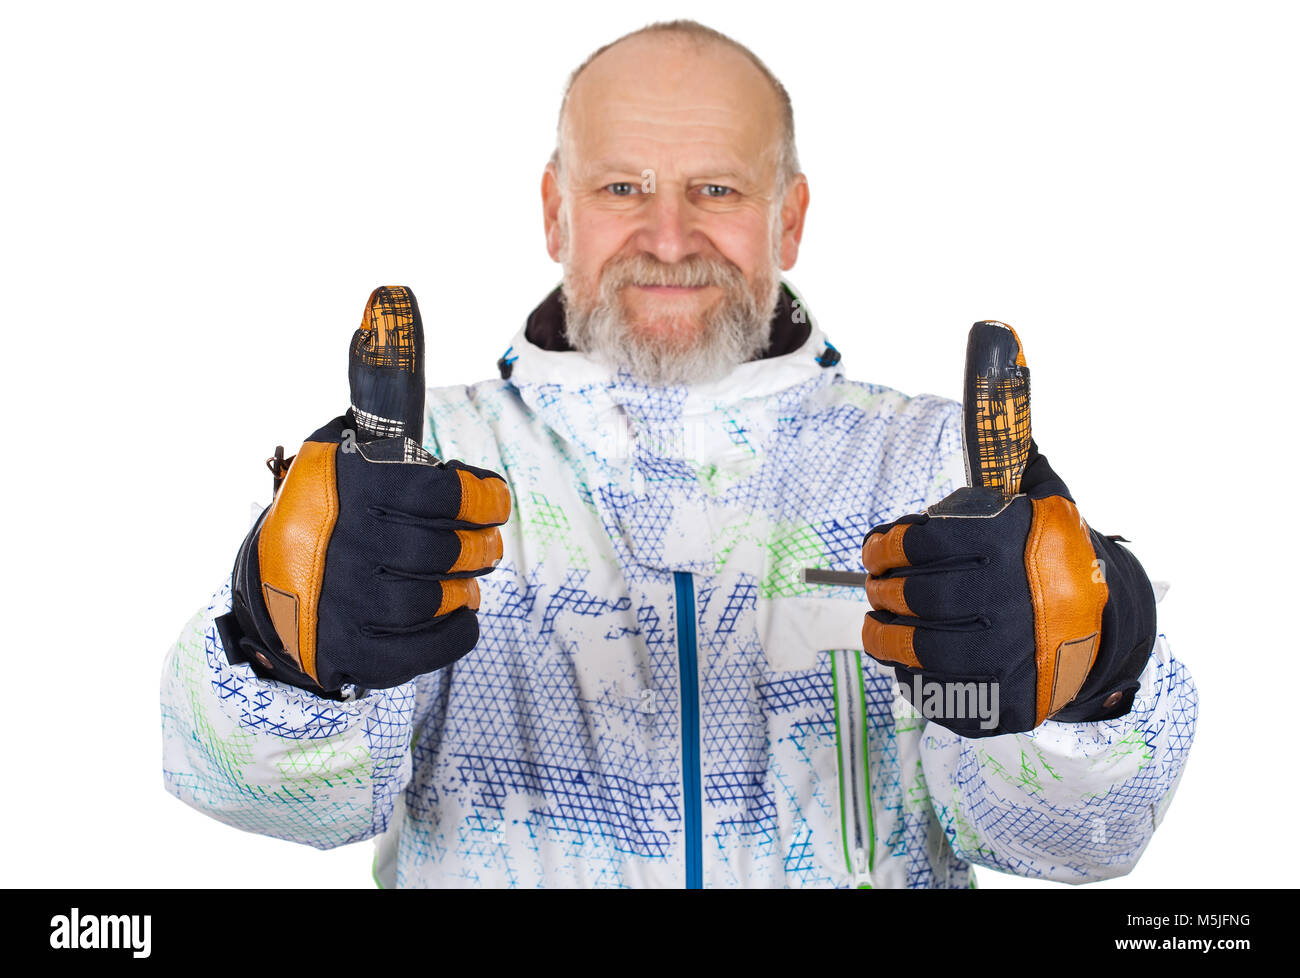 Cheerful elderly man in ski suit showing thumbs up on isolated background - Stock Image